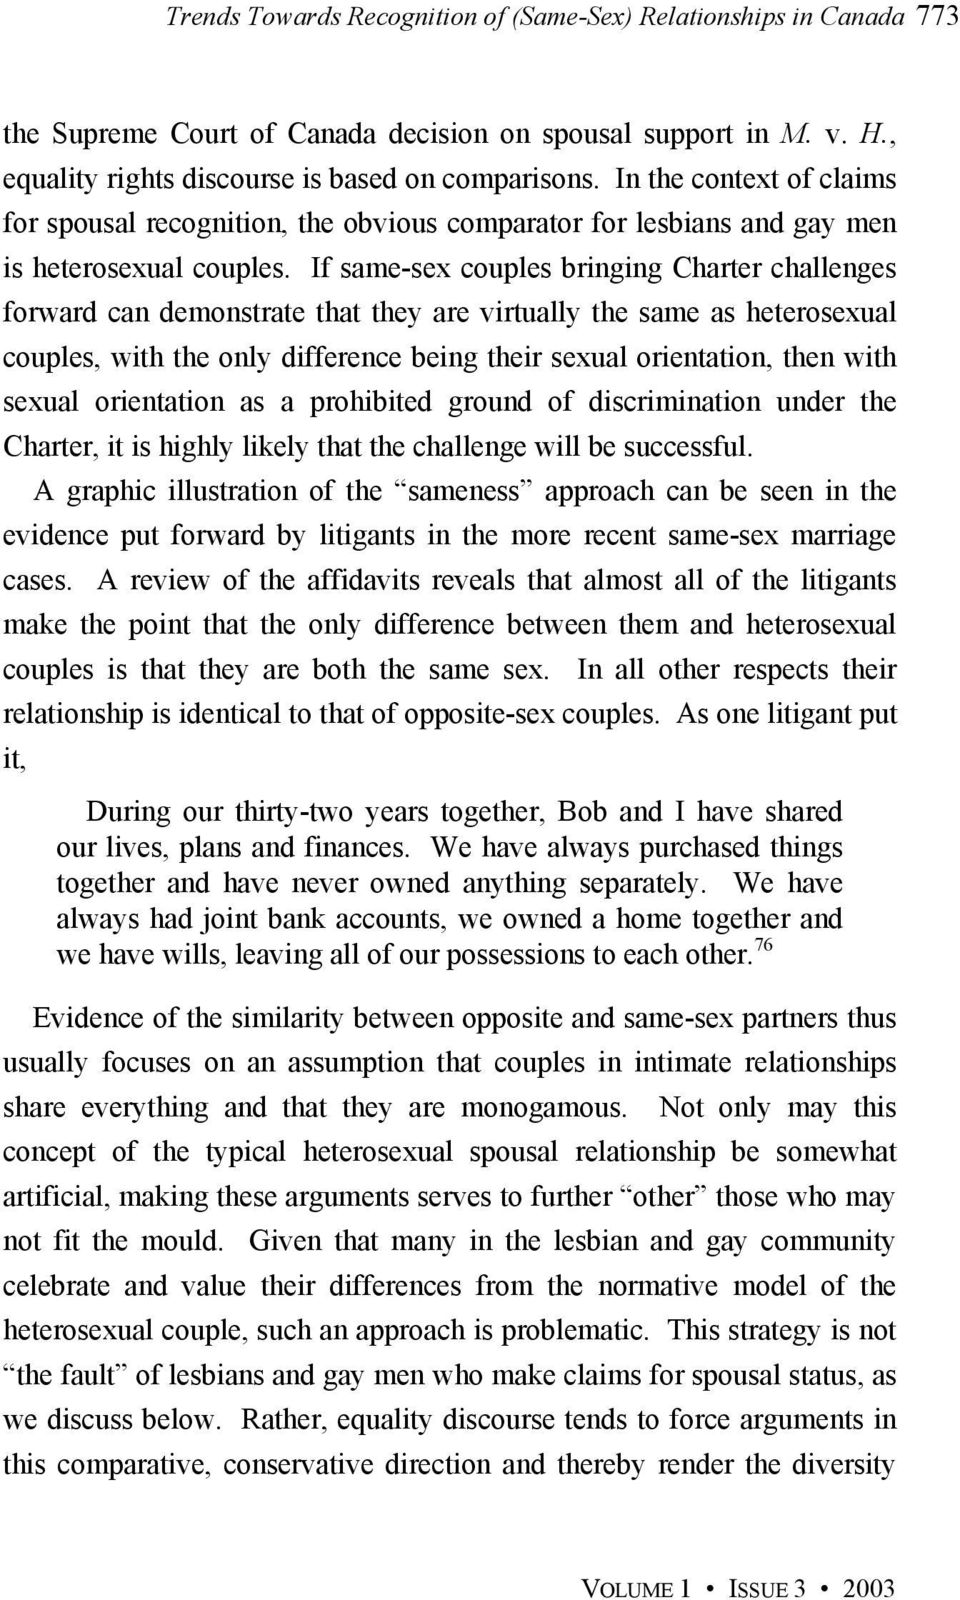 If same-sex couples bringing Charter challenges forward can demonstrate that they are virtually the same as heterosexual couples, with the only difference being their sexual orientation, then with